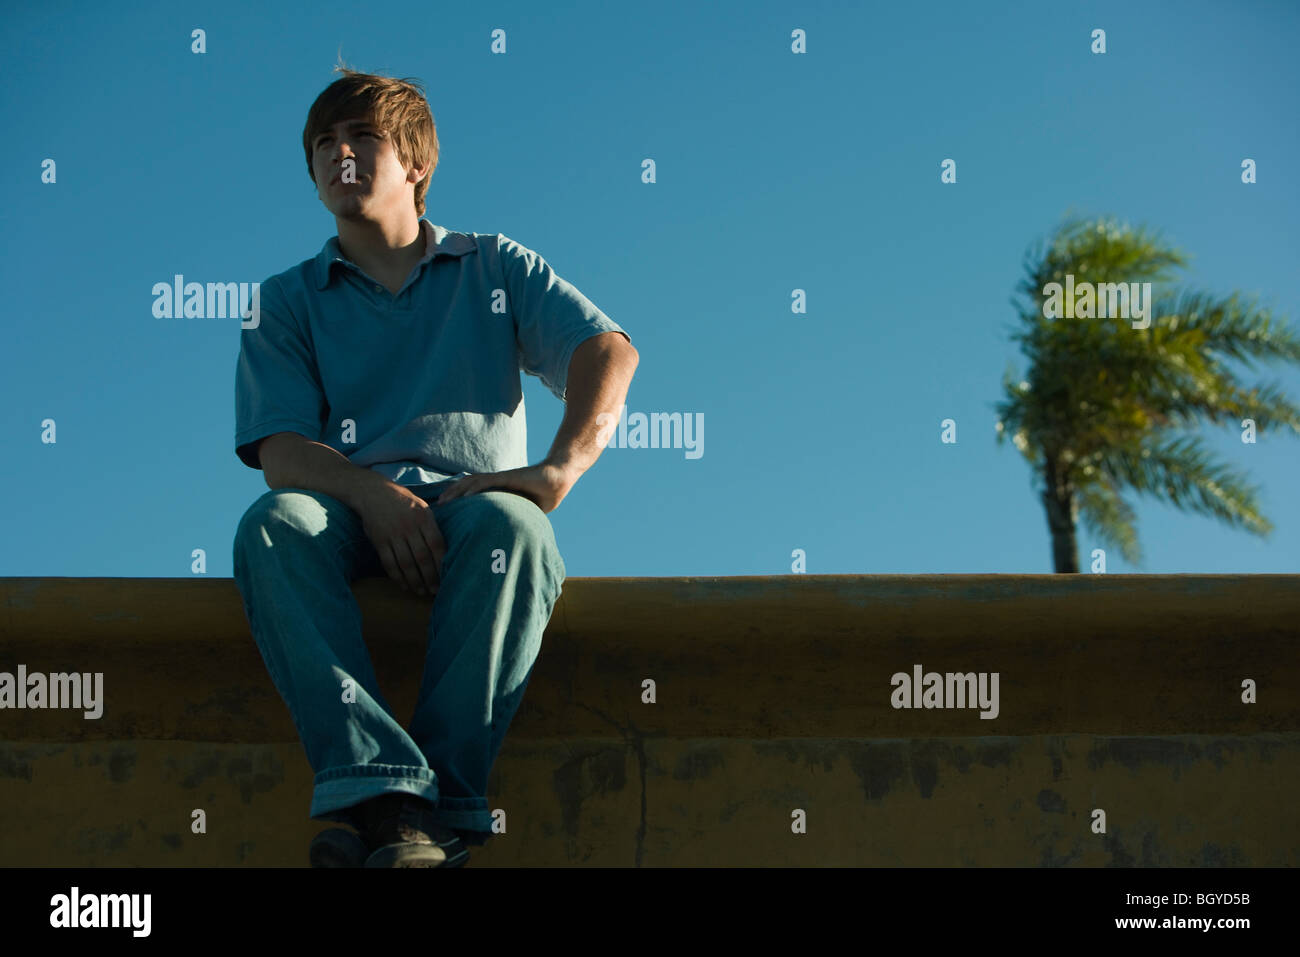 Young man sitting on ledge, looking away - Stock Image